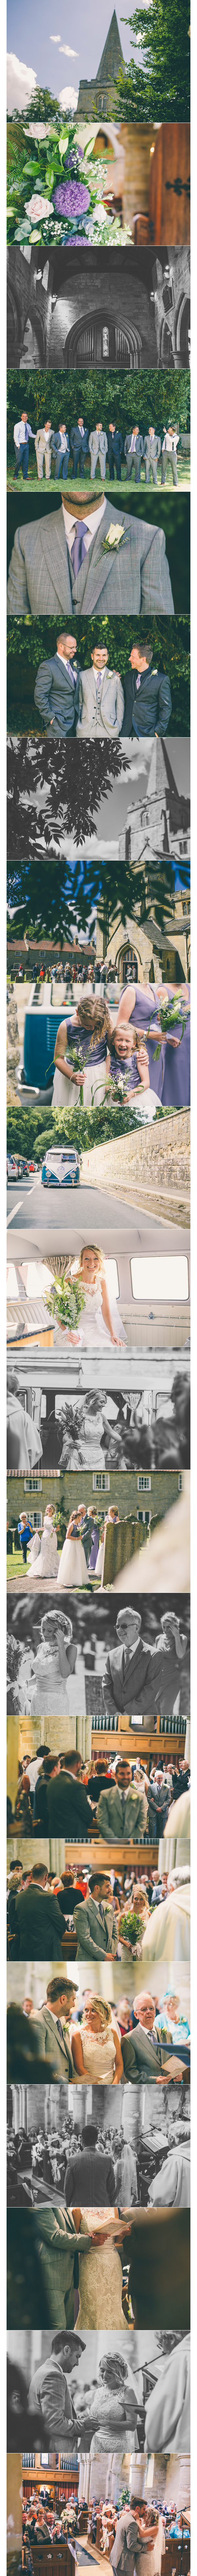 NeilJacksonPhotographicScarboroughYorkYorkshireWeddingPhotographerLou&ChristianHacknessChurchHacknessVillageHallWeddingScarboroughBlog2